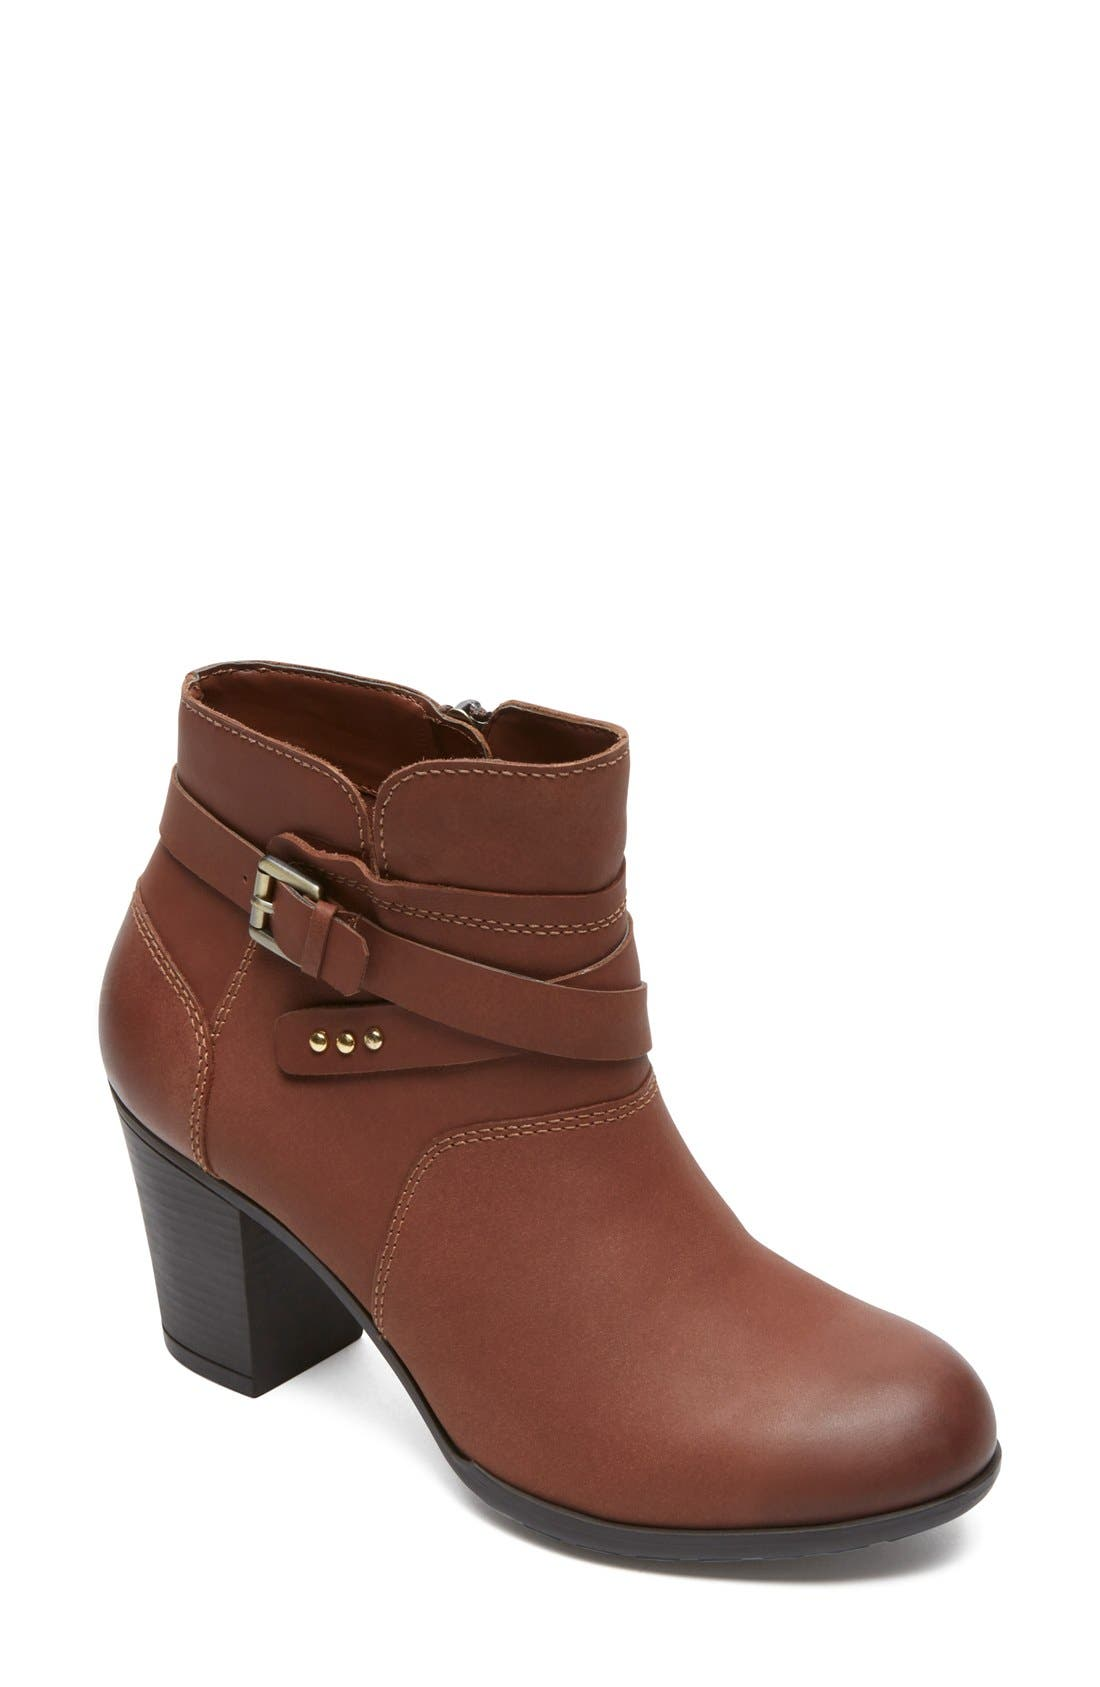 Alternate Image 1 Selected - Rockport 'City Casuals - Catriona' Bootie (Women)